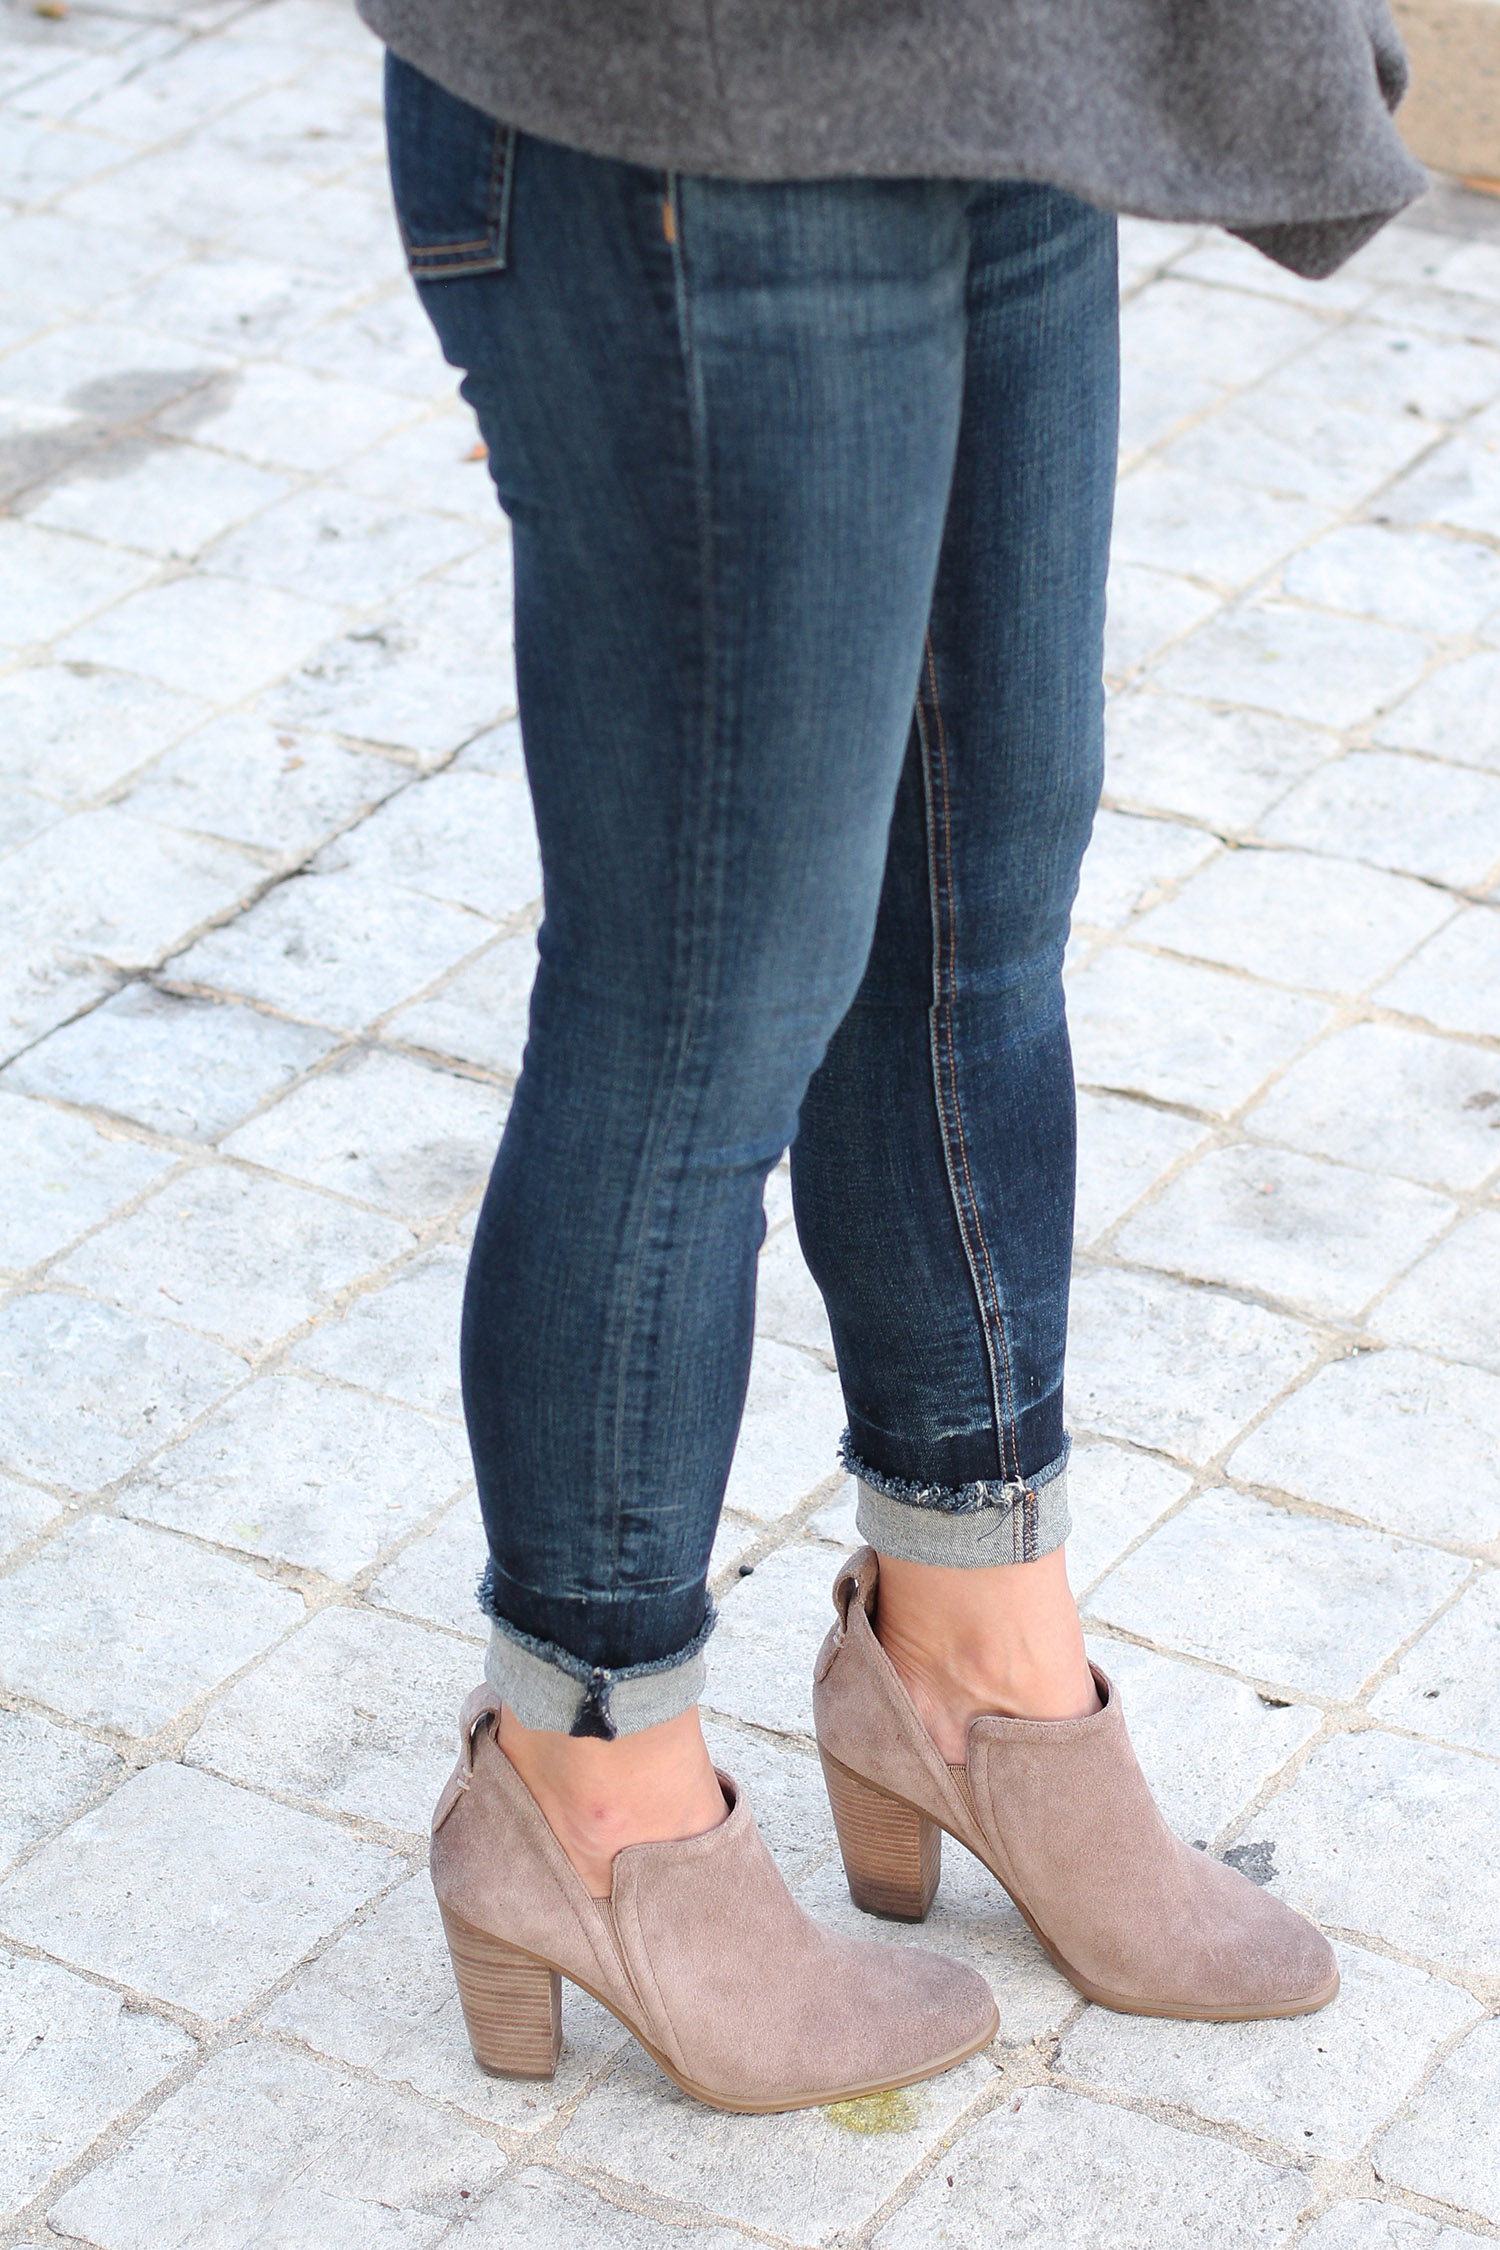 Neutral Ankle Boots and Jeans Outfit